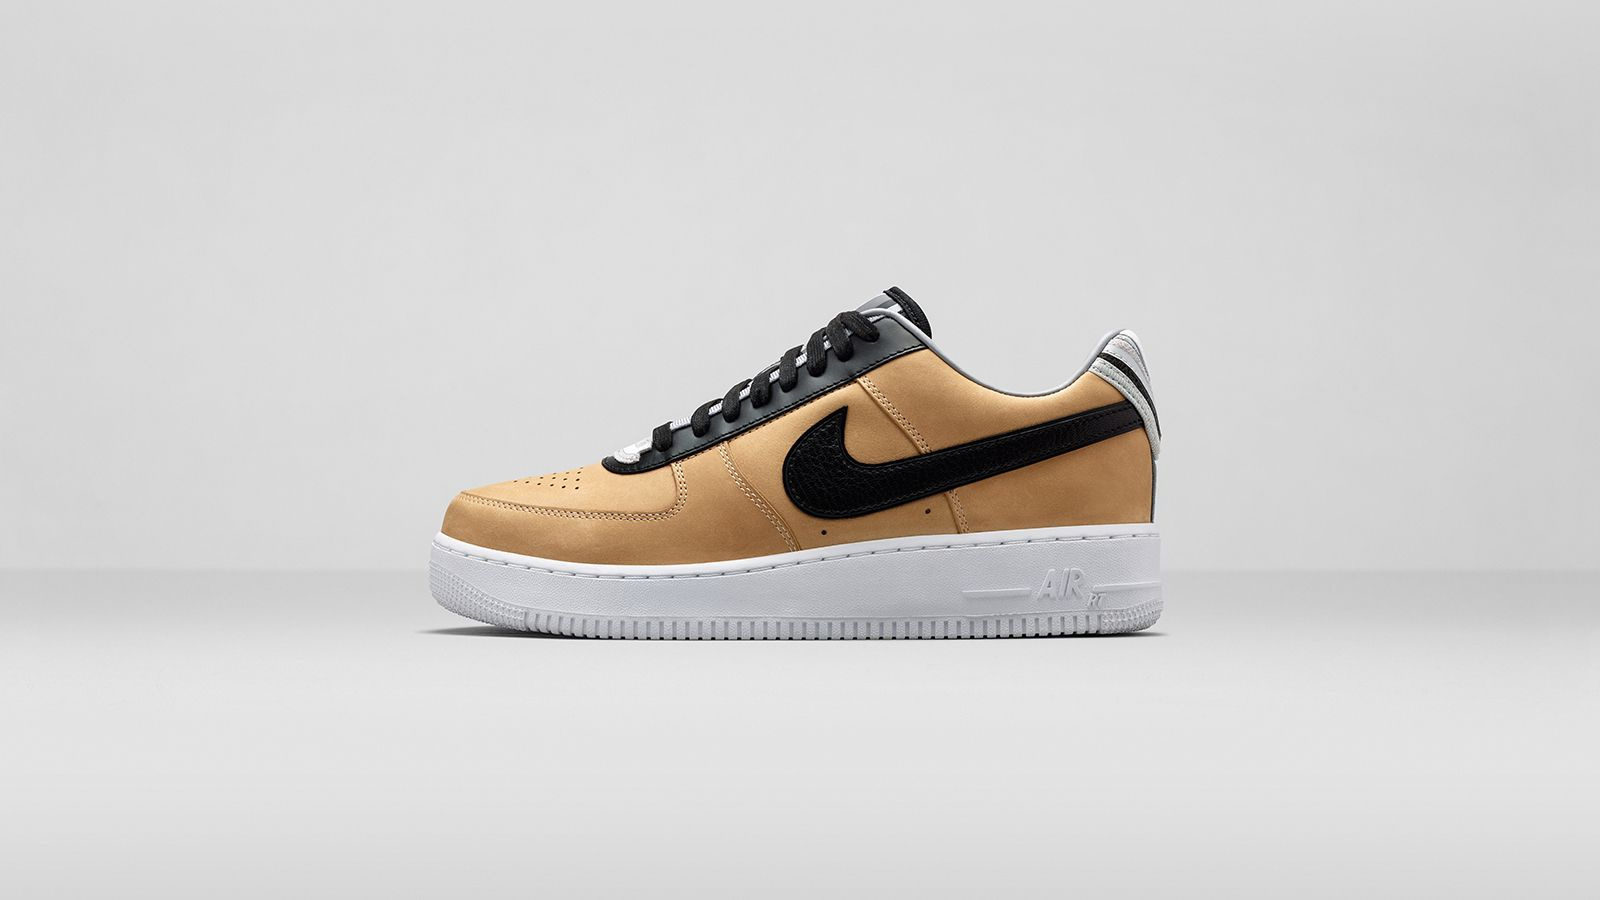 nike air force 1 basse. Les Nike Air Force One Basse édition Collector 1